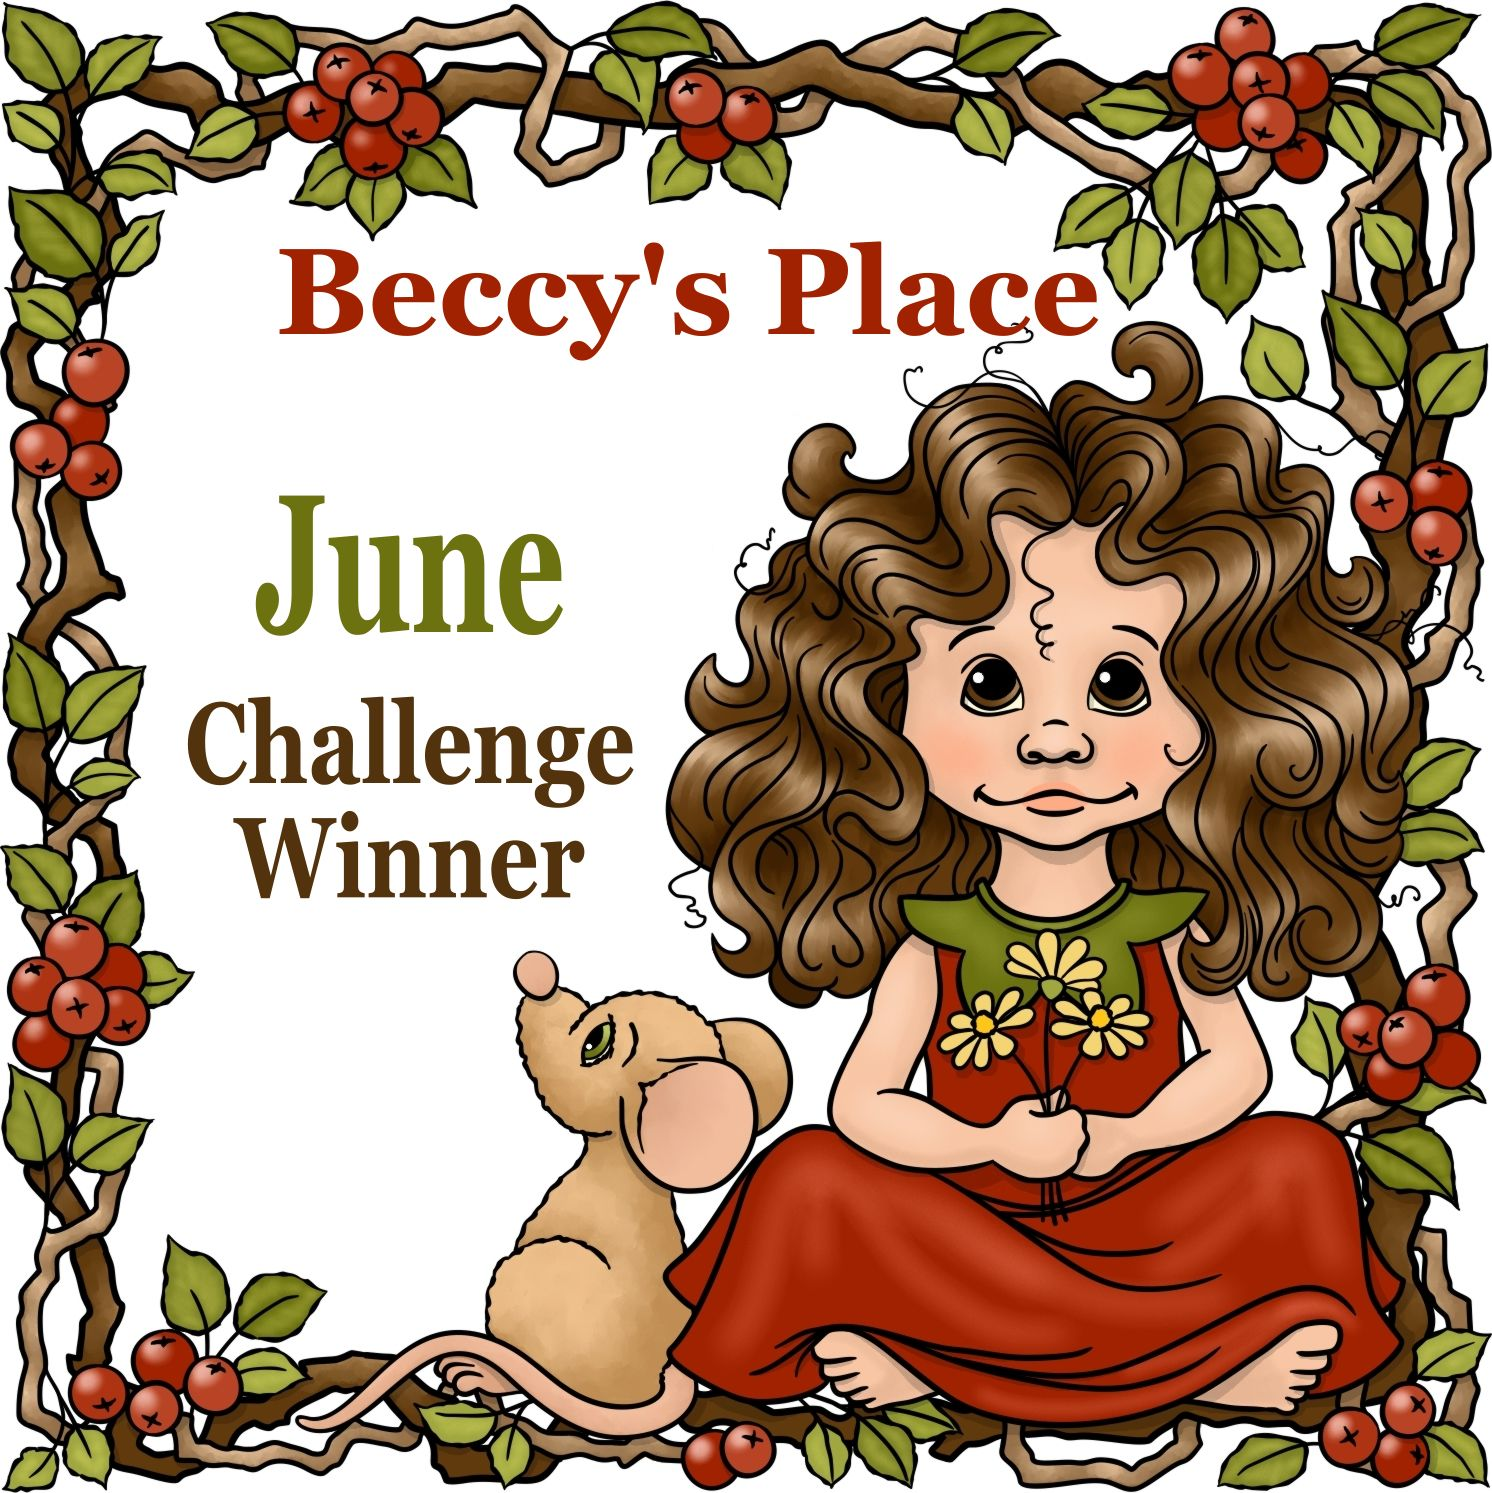 Beccy's Place: June